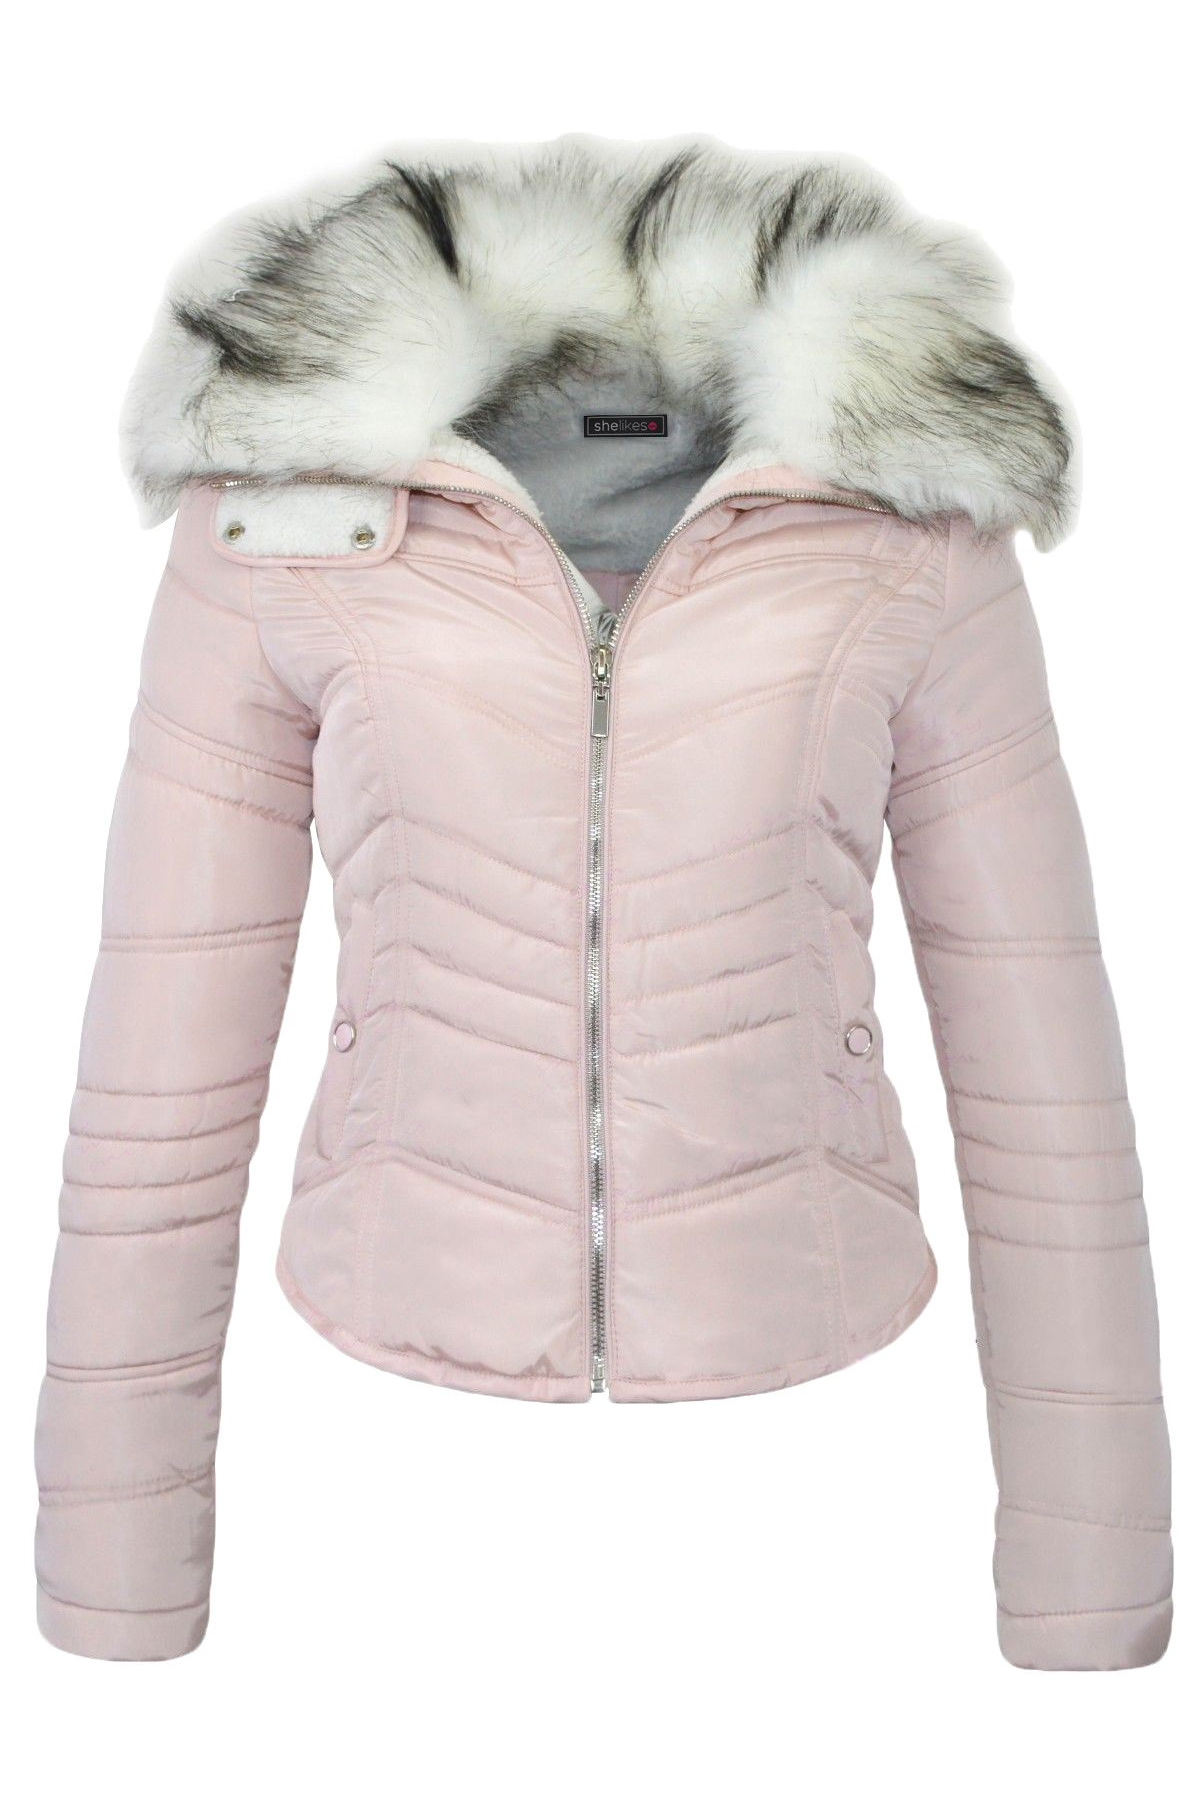 Belle Blush Pink Quilted Jacket with Faux Fur Collar - Shelikes